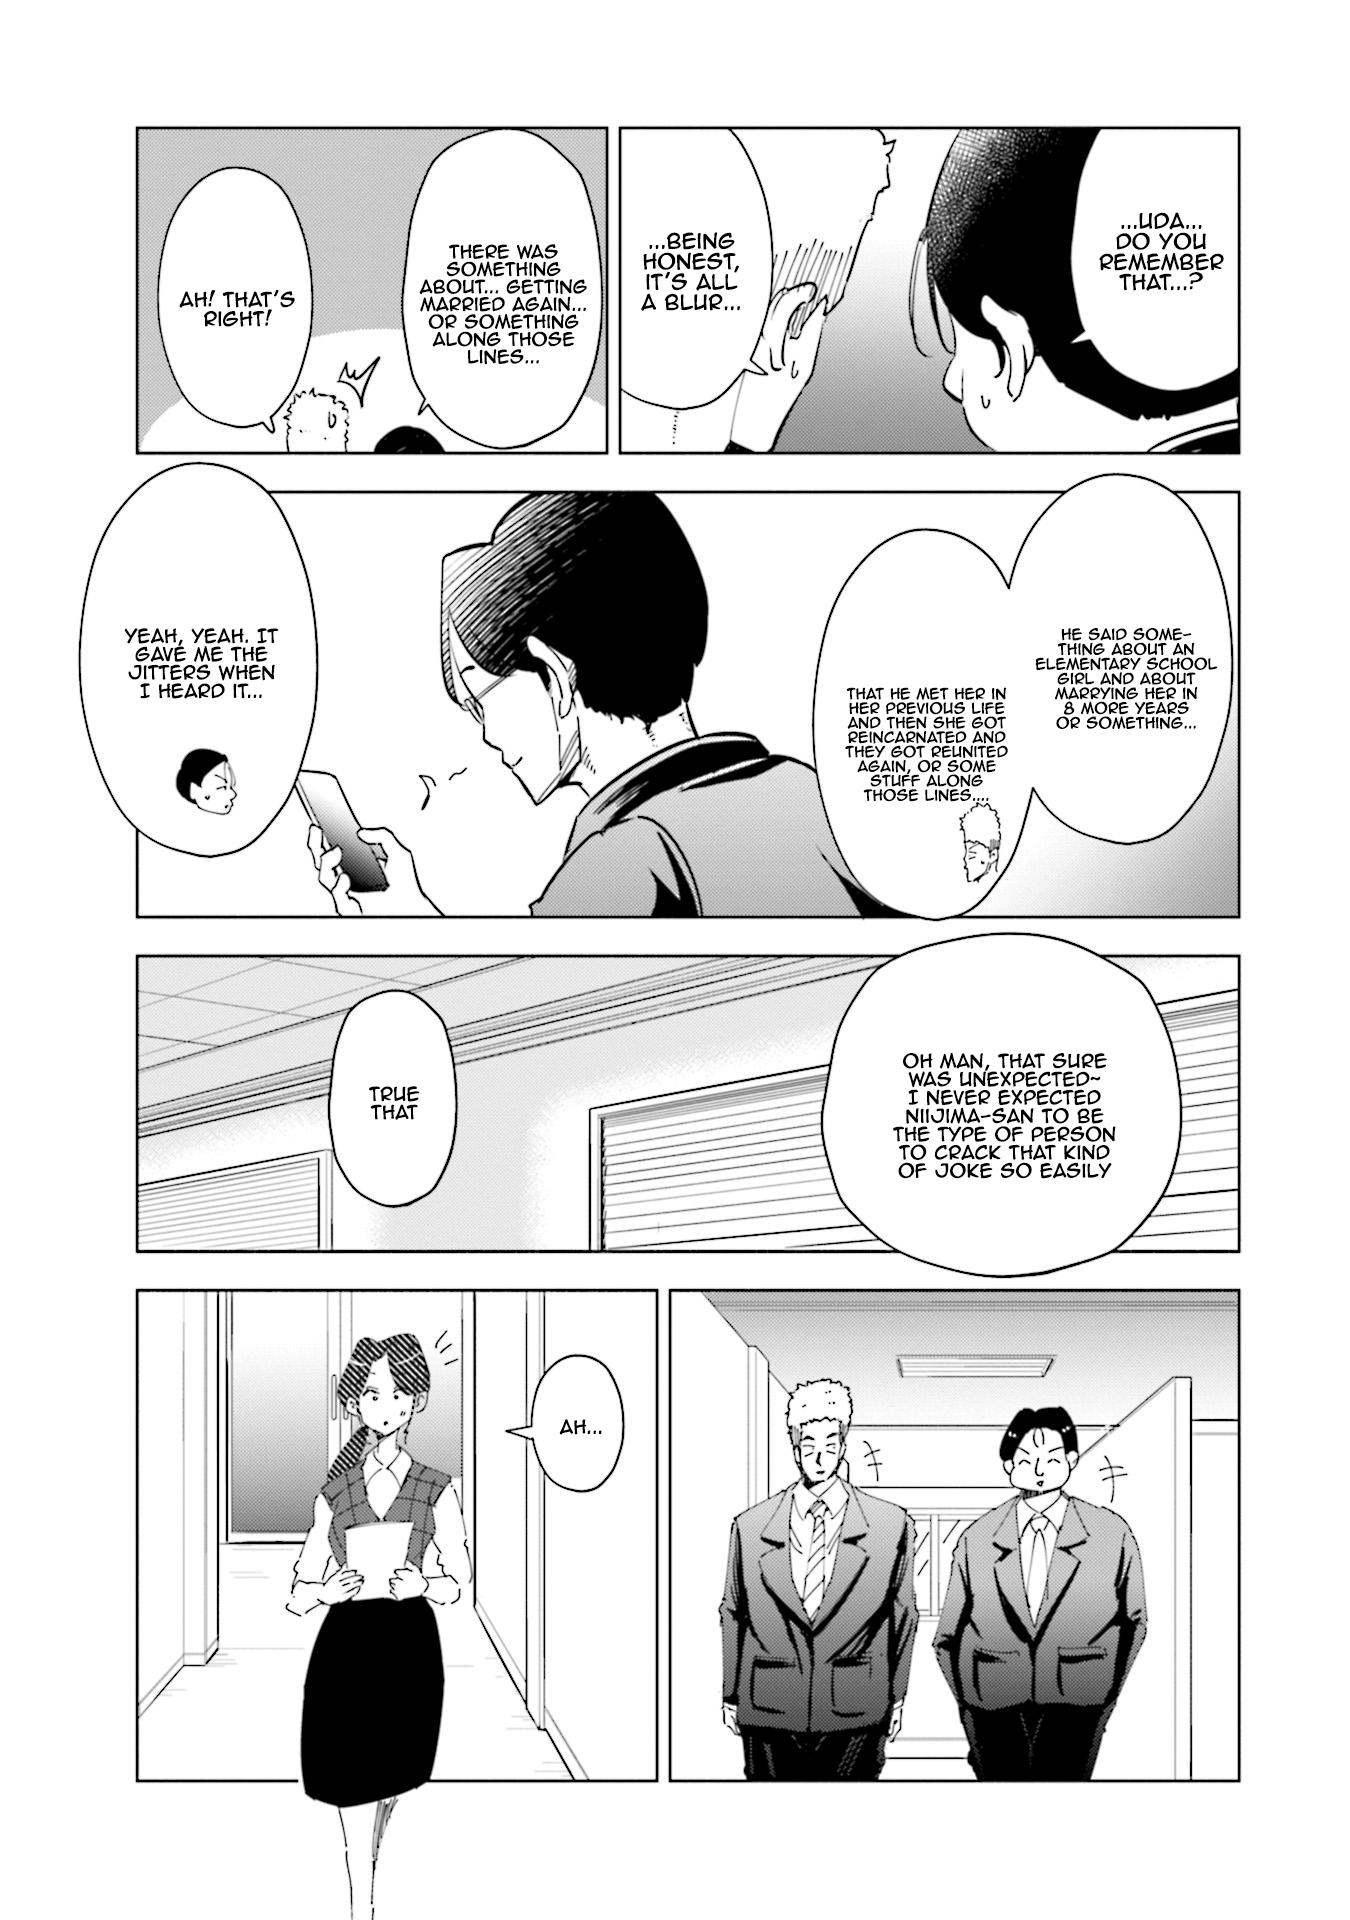 Manga If My Wife Became an Elementary School Student - Chapter 32 Page 10